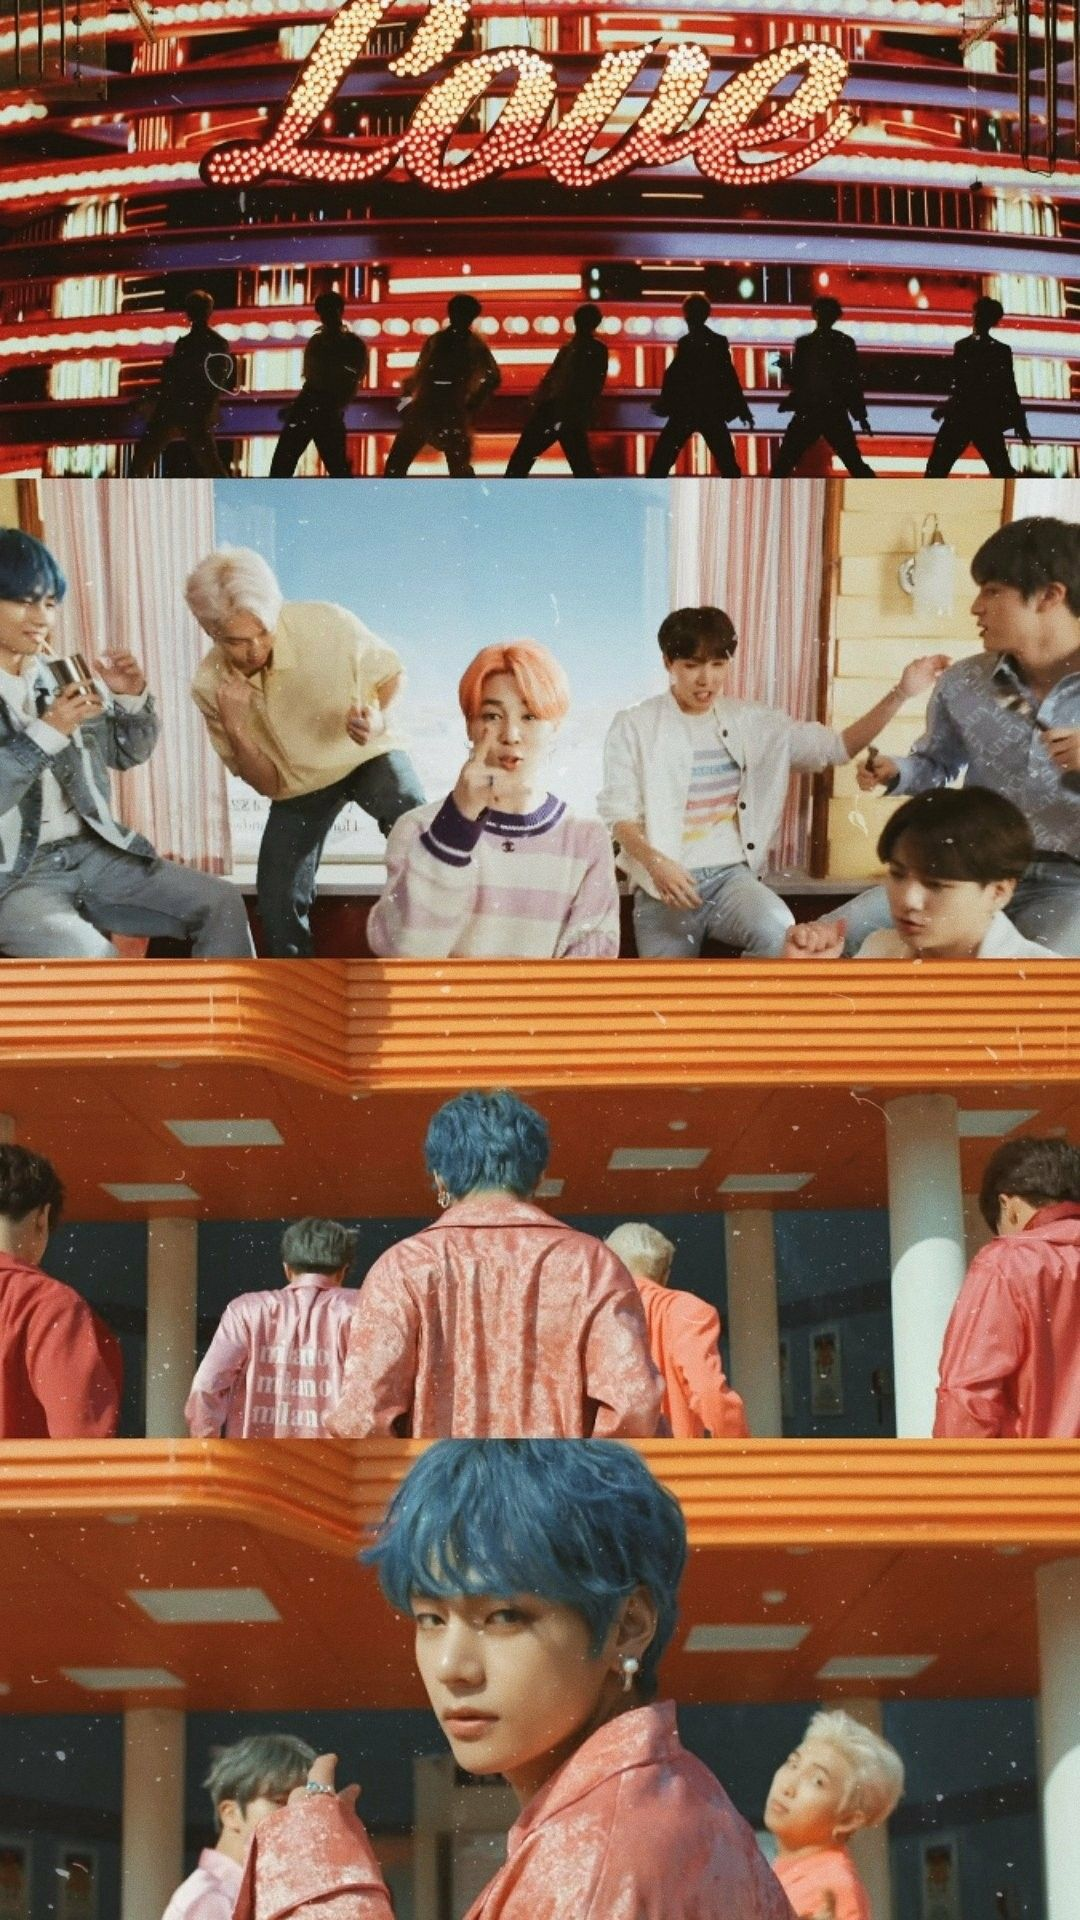 Bts Boy With Luv Feat Halsey Boywithluv Wallpapers Bts Wallpaper Bts Boys Bts Photo Bts wallpaper boy with luv